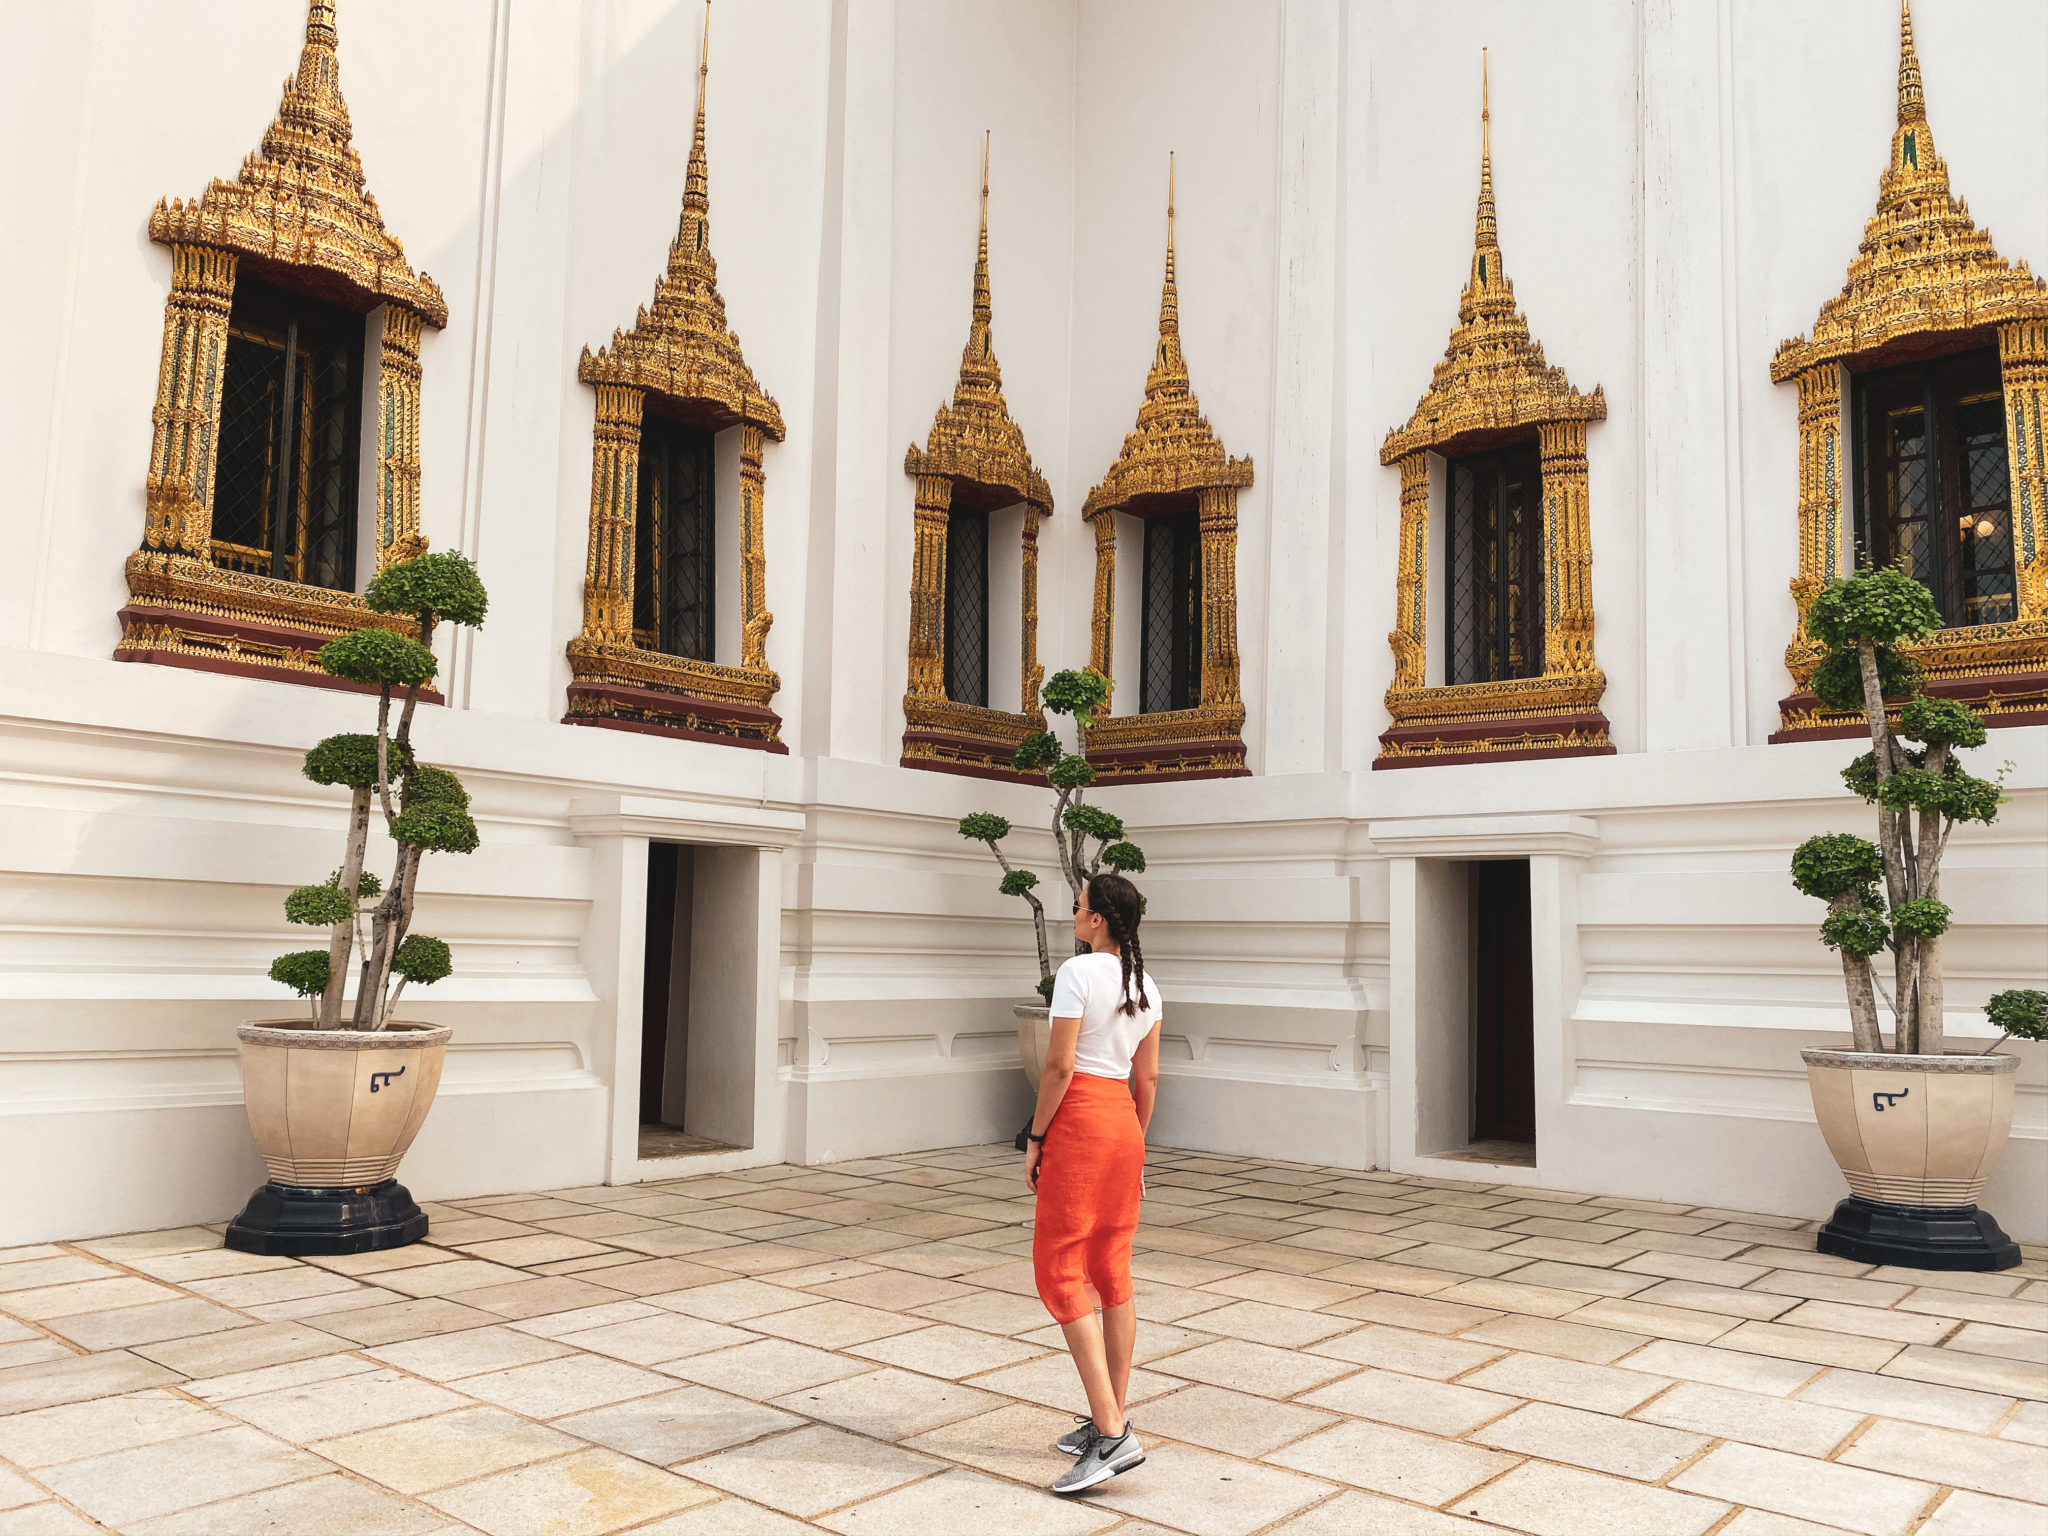 The Grand Palace - 3 days itinerary in Bangkok, Thailand - Travel blogger Michaella from Quite a Looker review